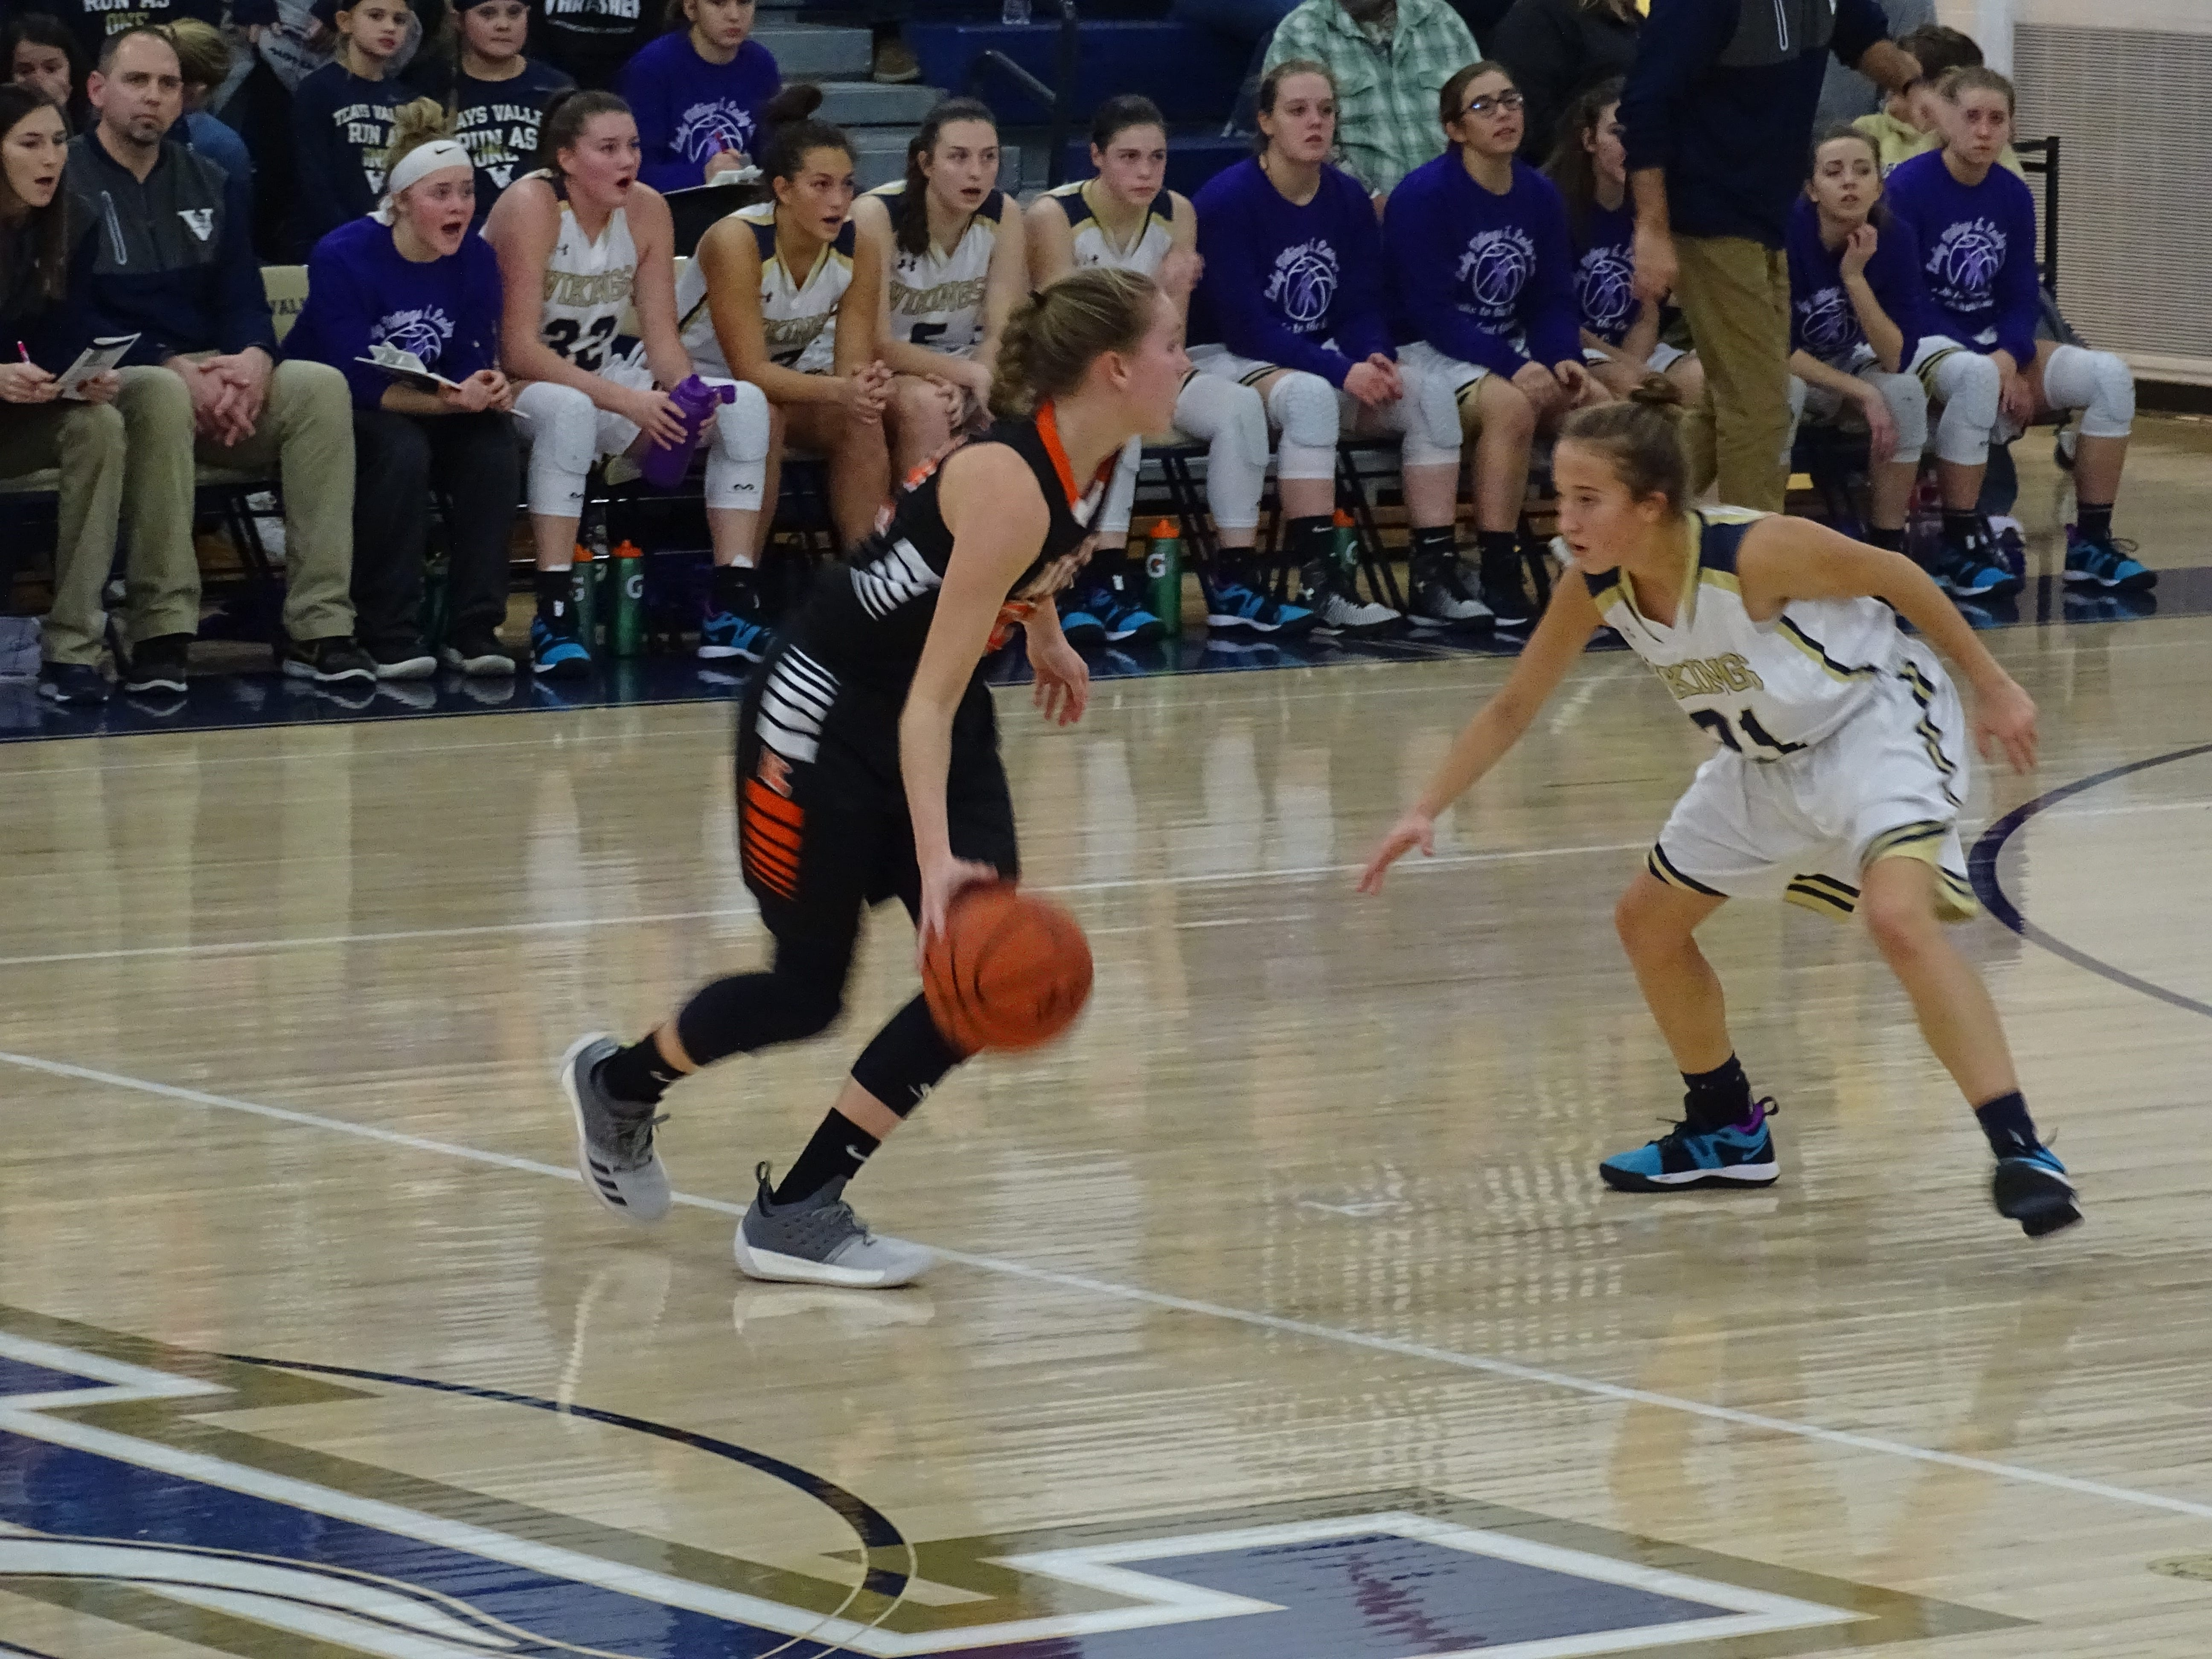 Amanda-Clearcreek senior guard gets set to make a move against a Teays Valley defender during the Aces' 55-41 loss Friday night.